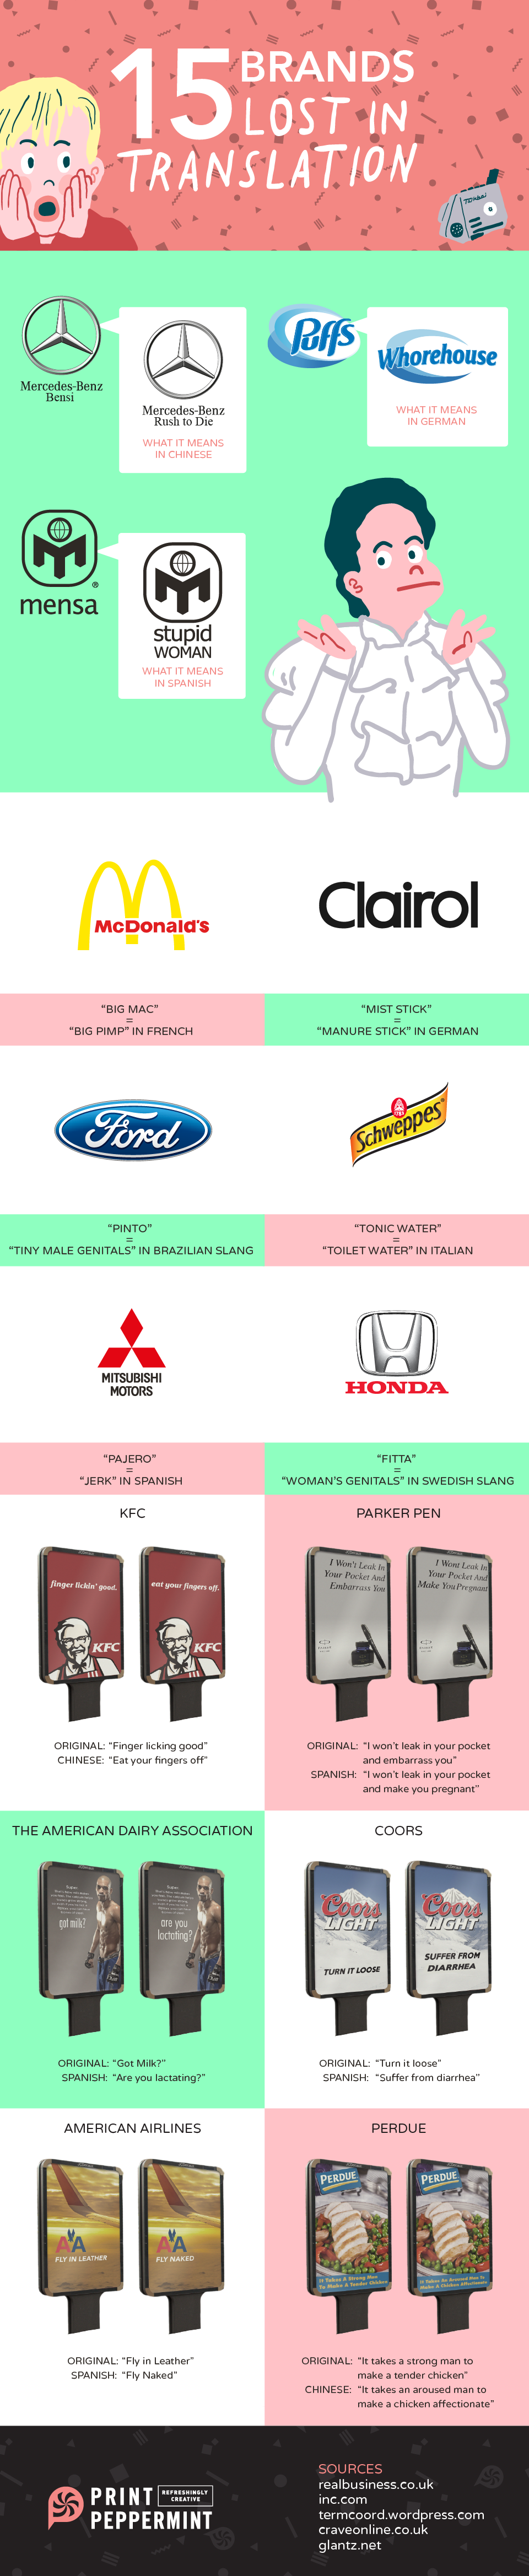 15 Brands Lost in Translation #Infographic